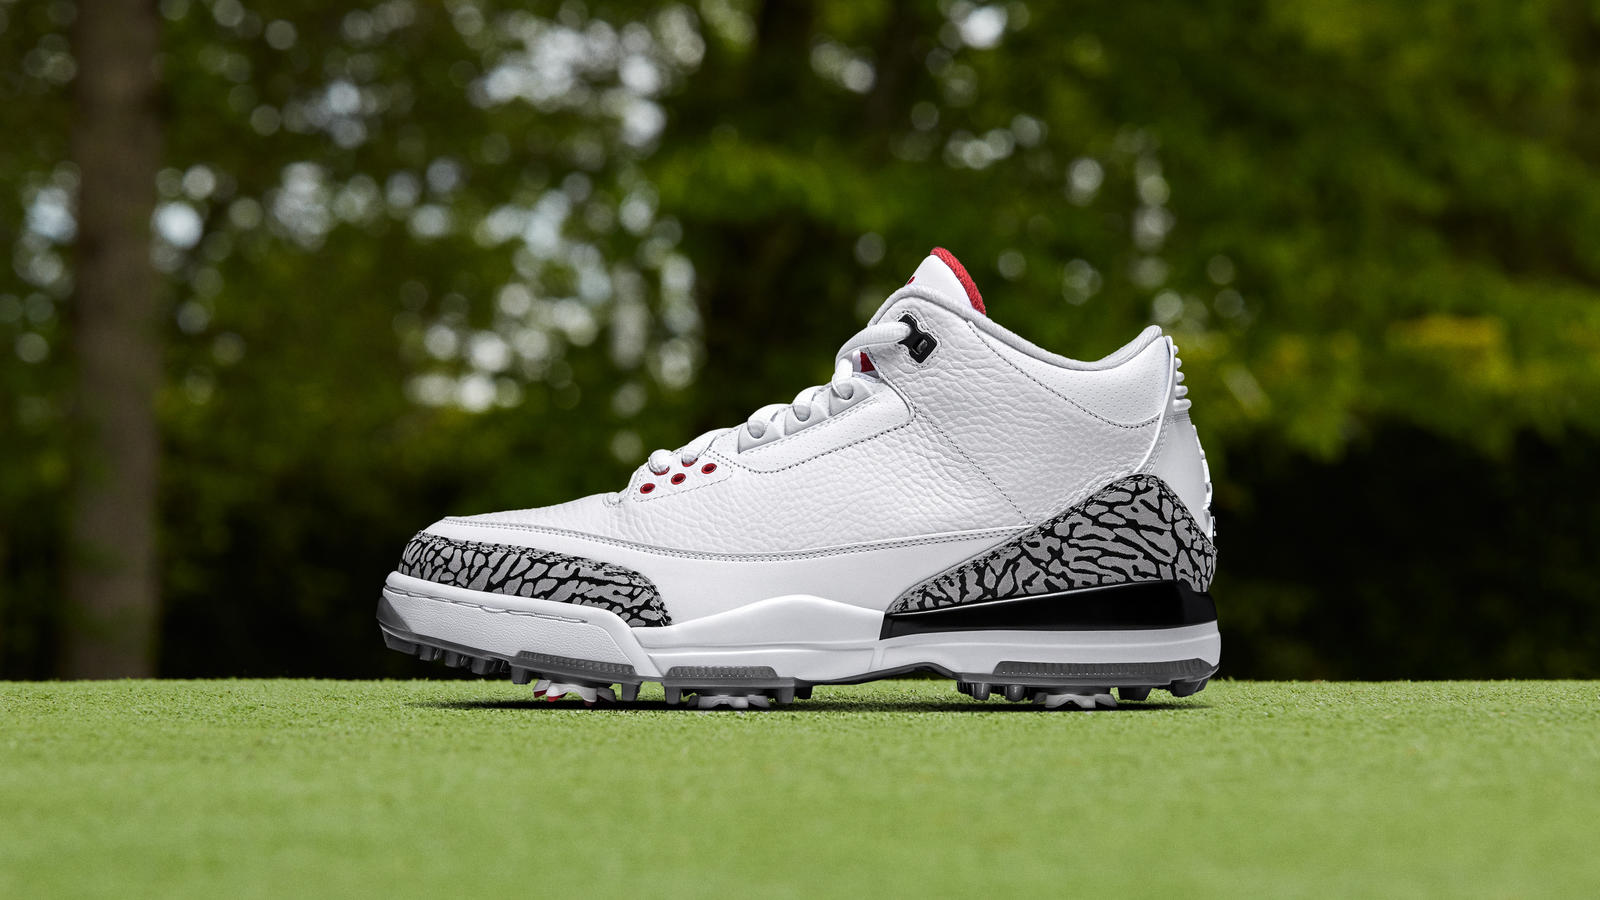 all air jordan golf shoes